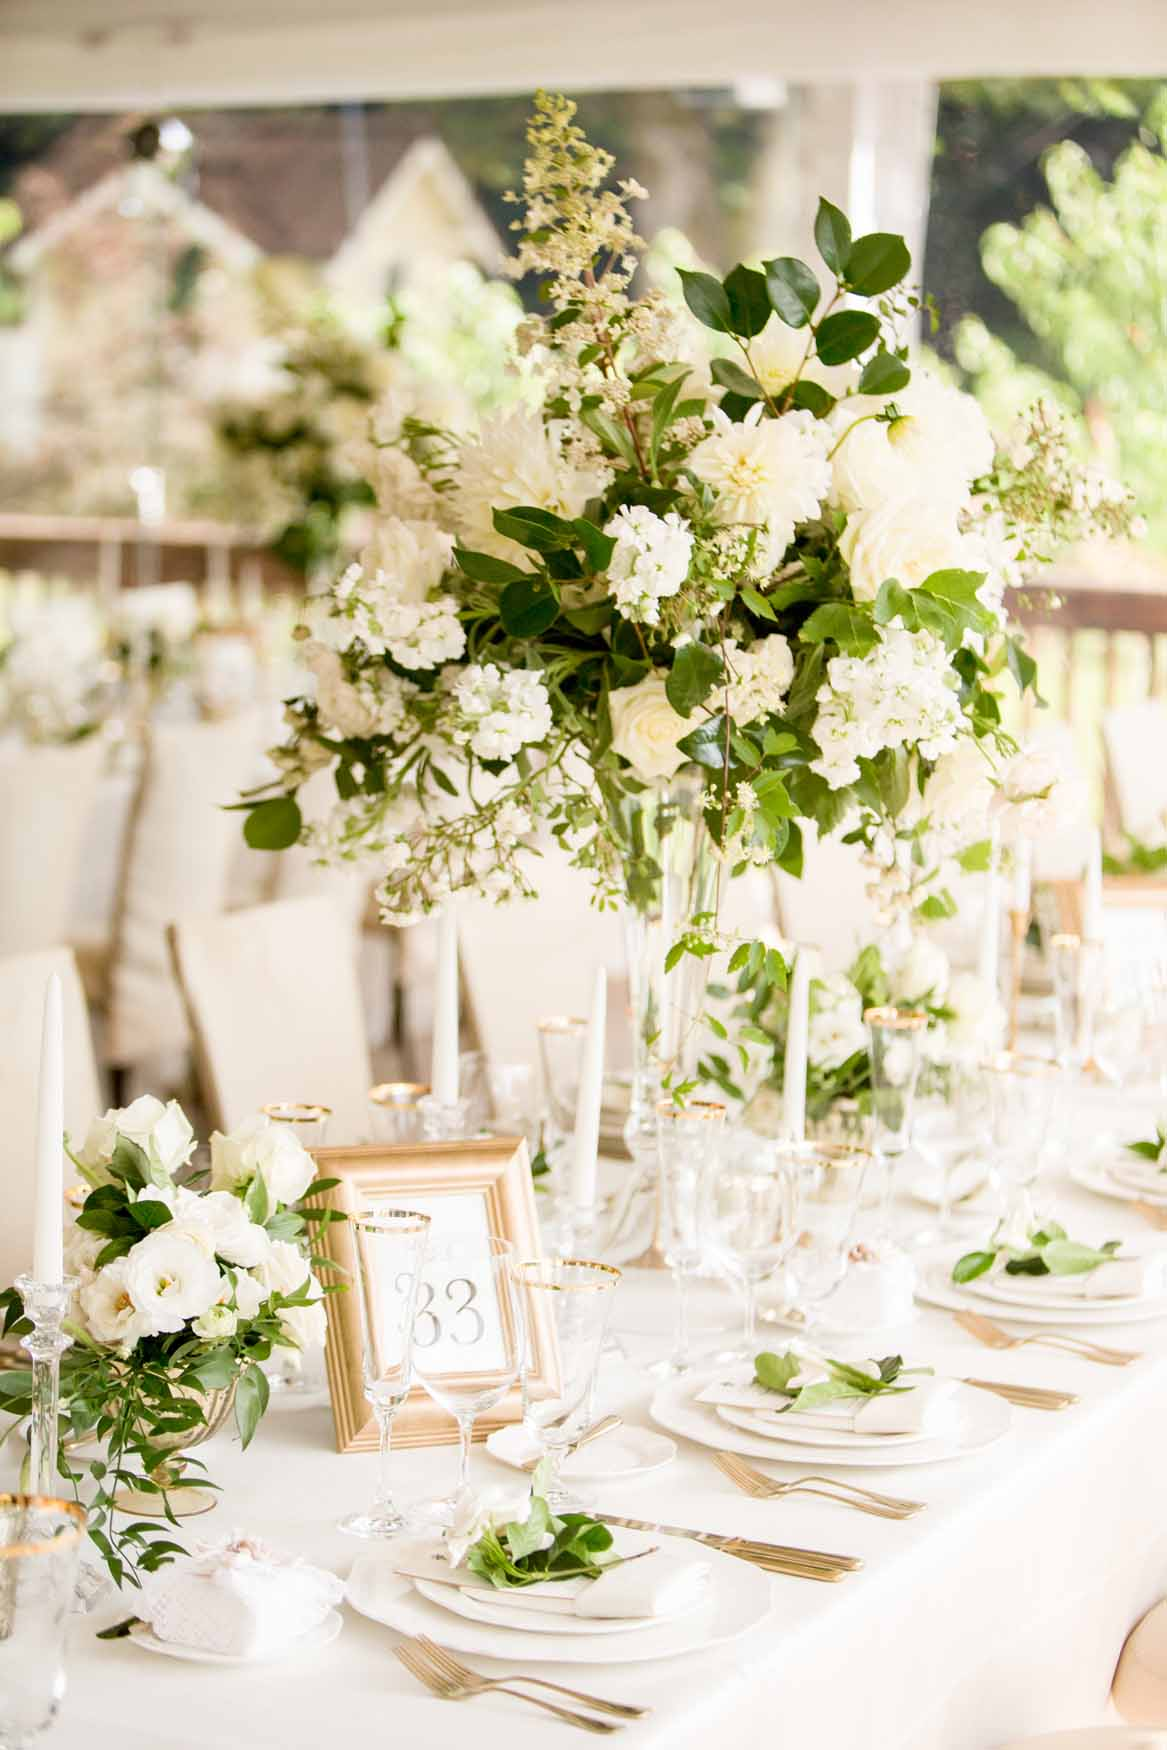 Tall centerpiece of white garden flowers on top of clear crystal vase - Elegant Summer Private Estate Wedding. Flora Nova Design Seattle